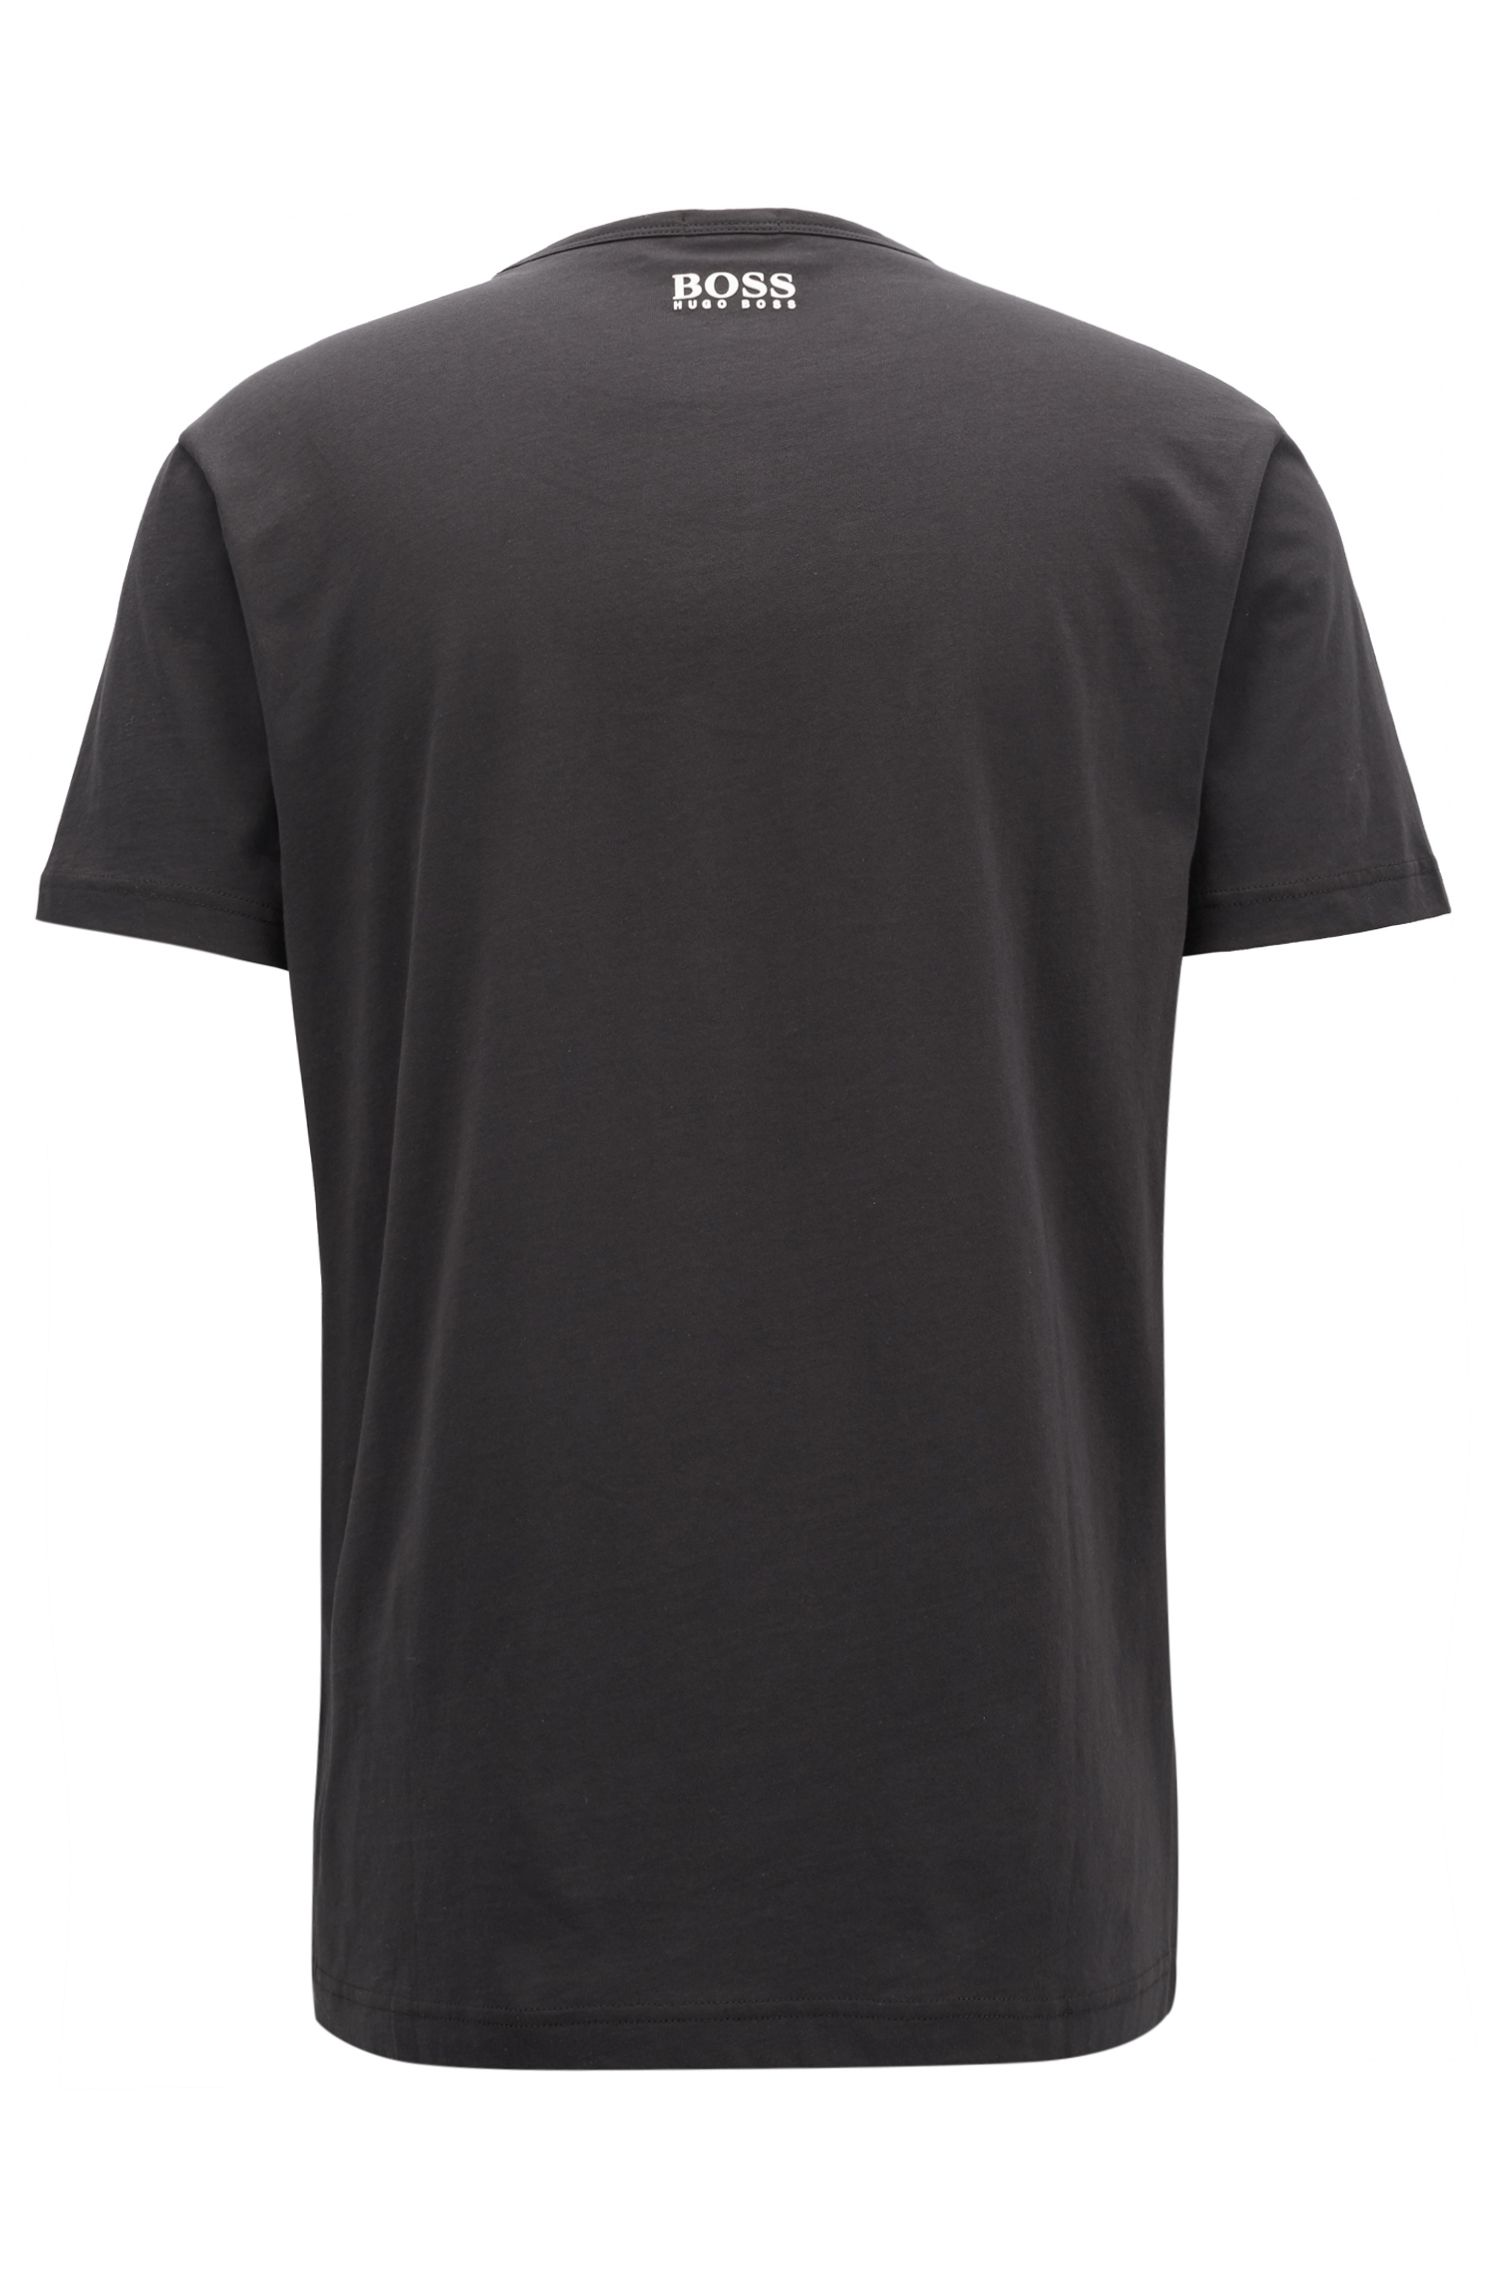 Short-sleeved graphic T-shirt in pure cotton, Black